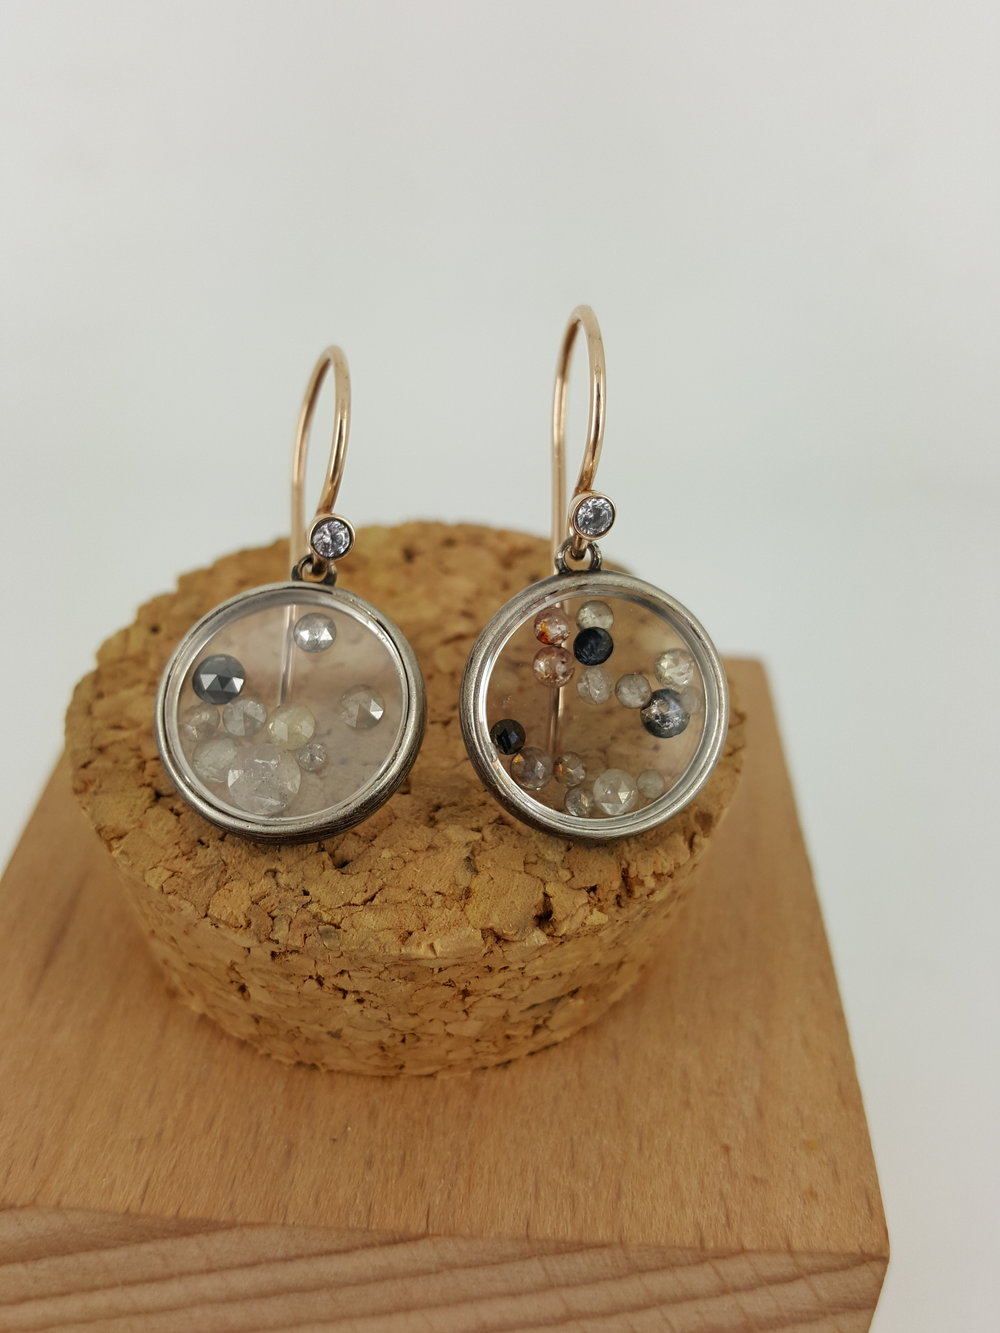 Organic Silver and 18 Karat Rose Gold, accented with Rustic diamonds framed in a sapphire crystal  Earrings.